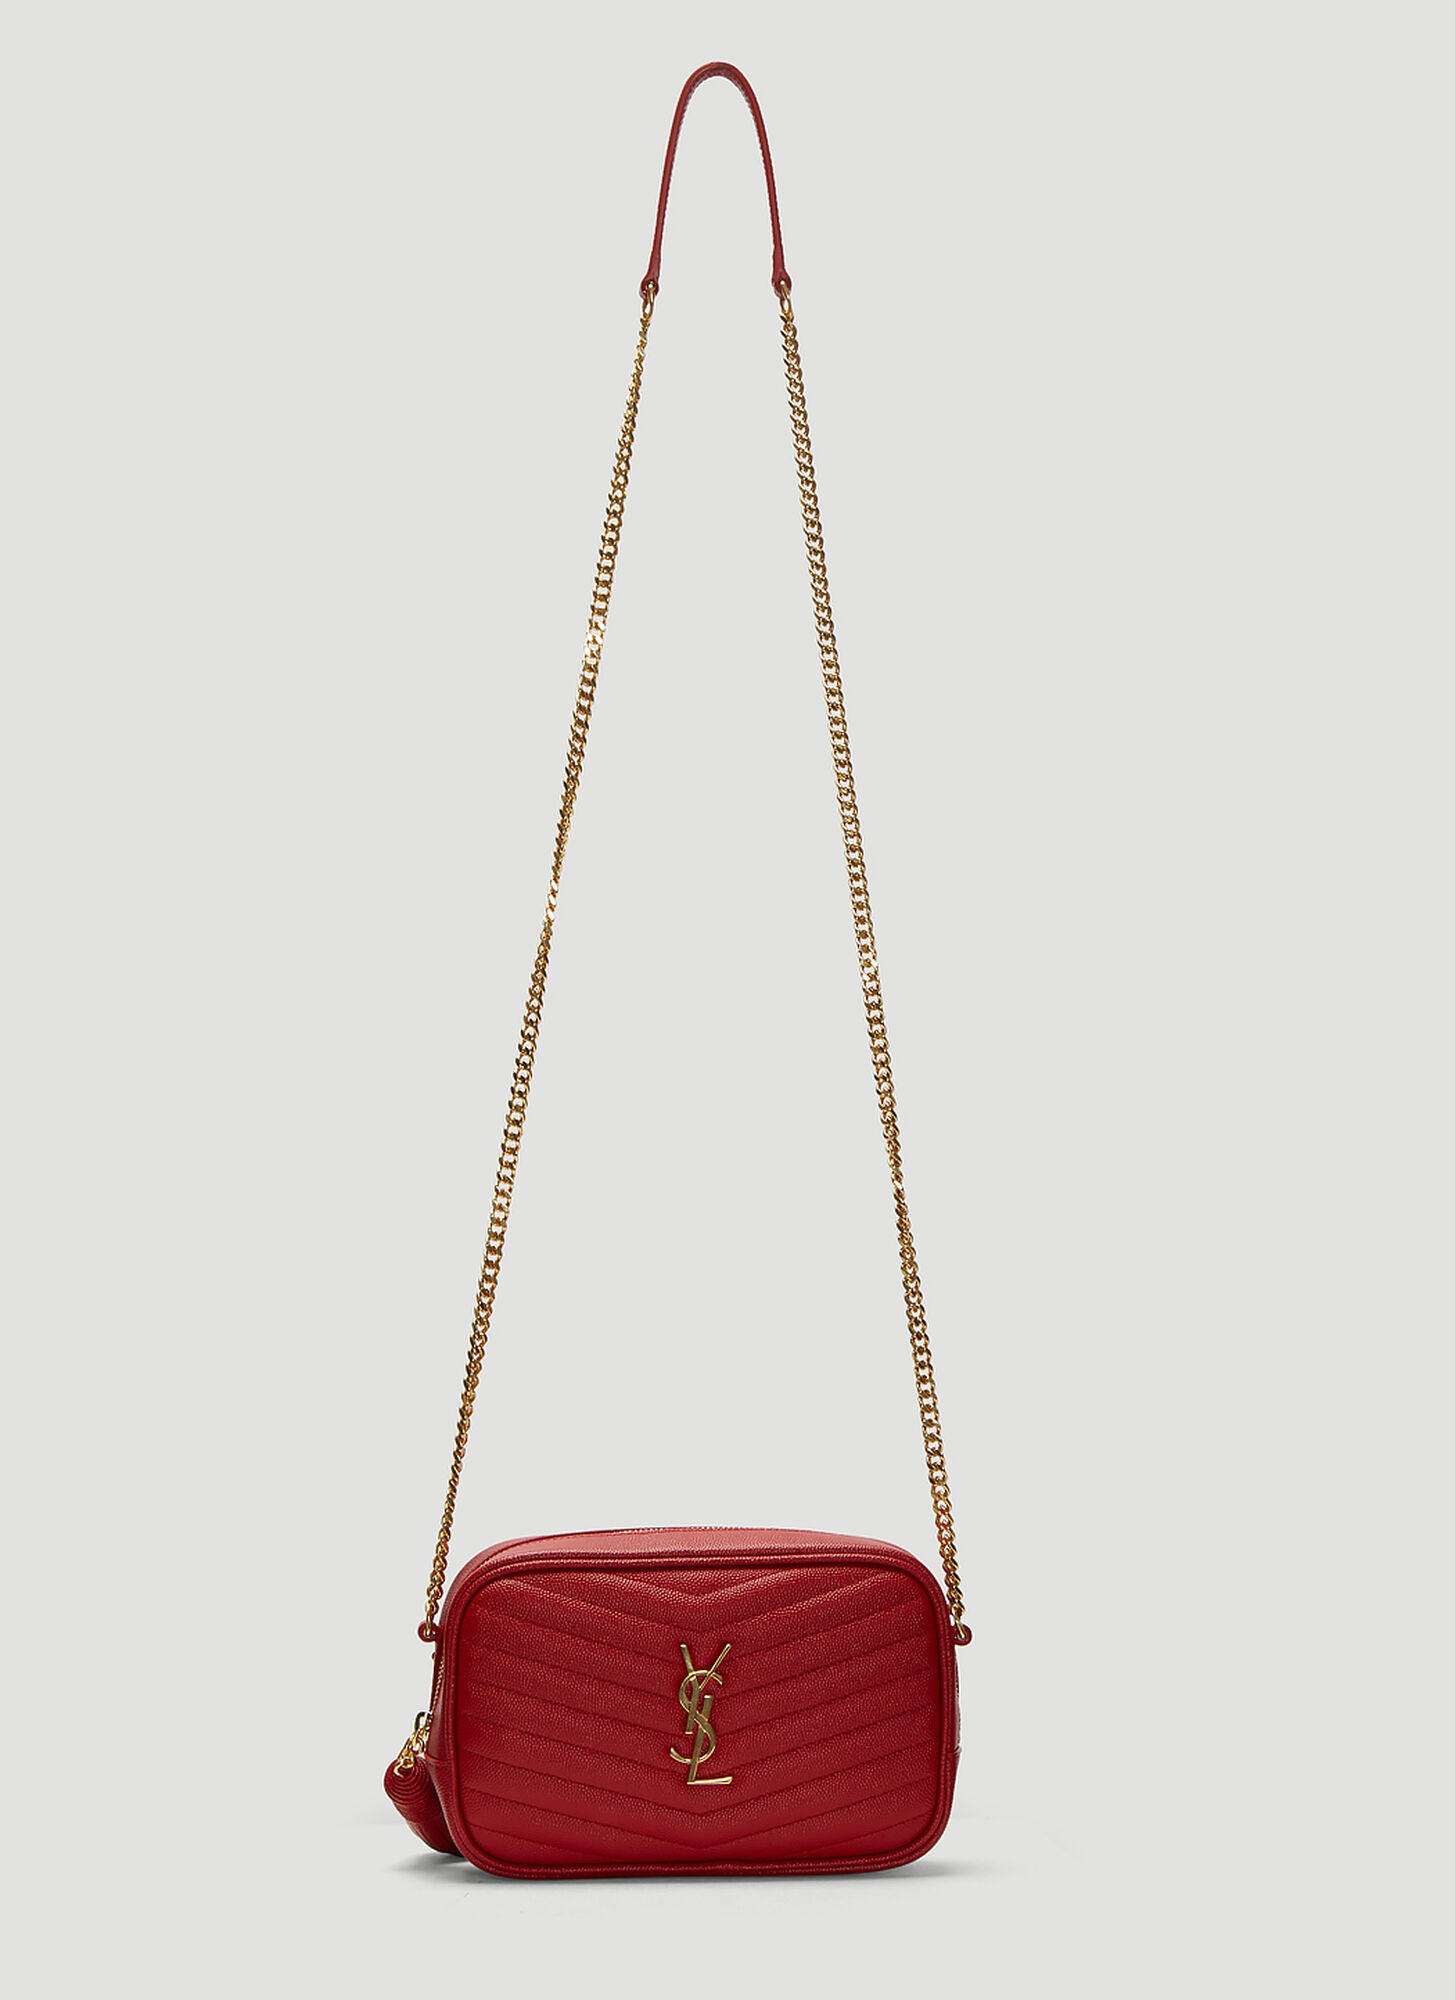 Saint Laurent Mono Bag in Red